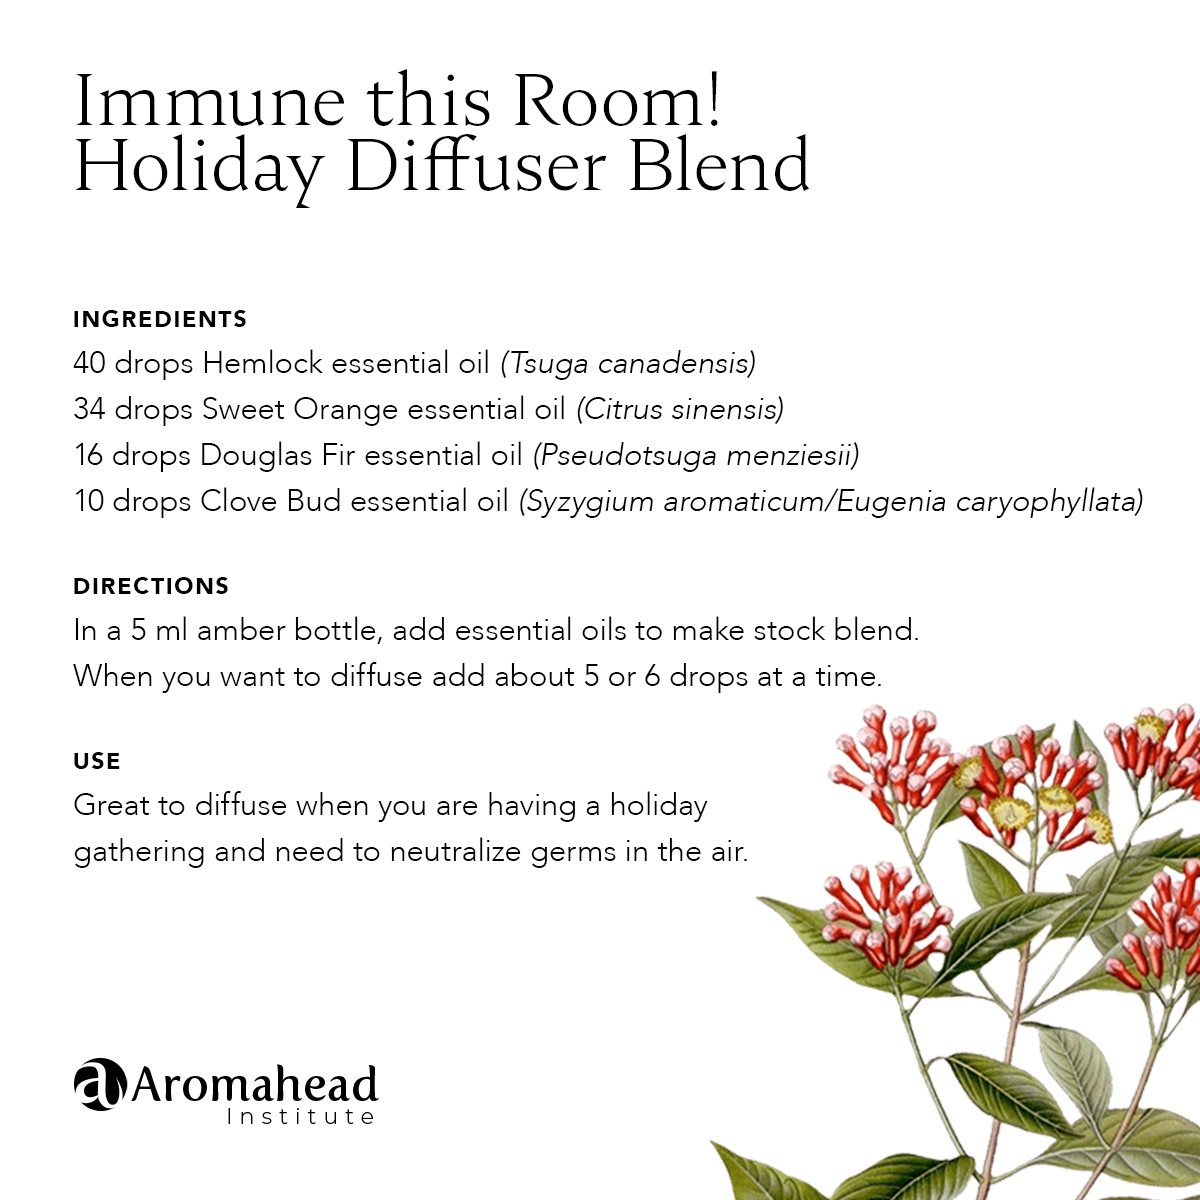 Immune This Room Holiday Diffuser Blend